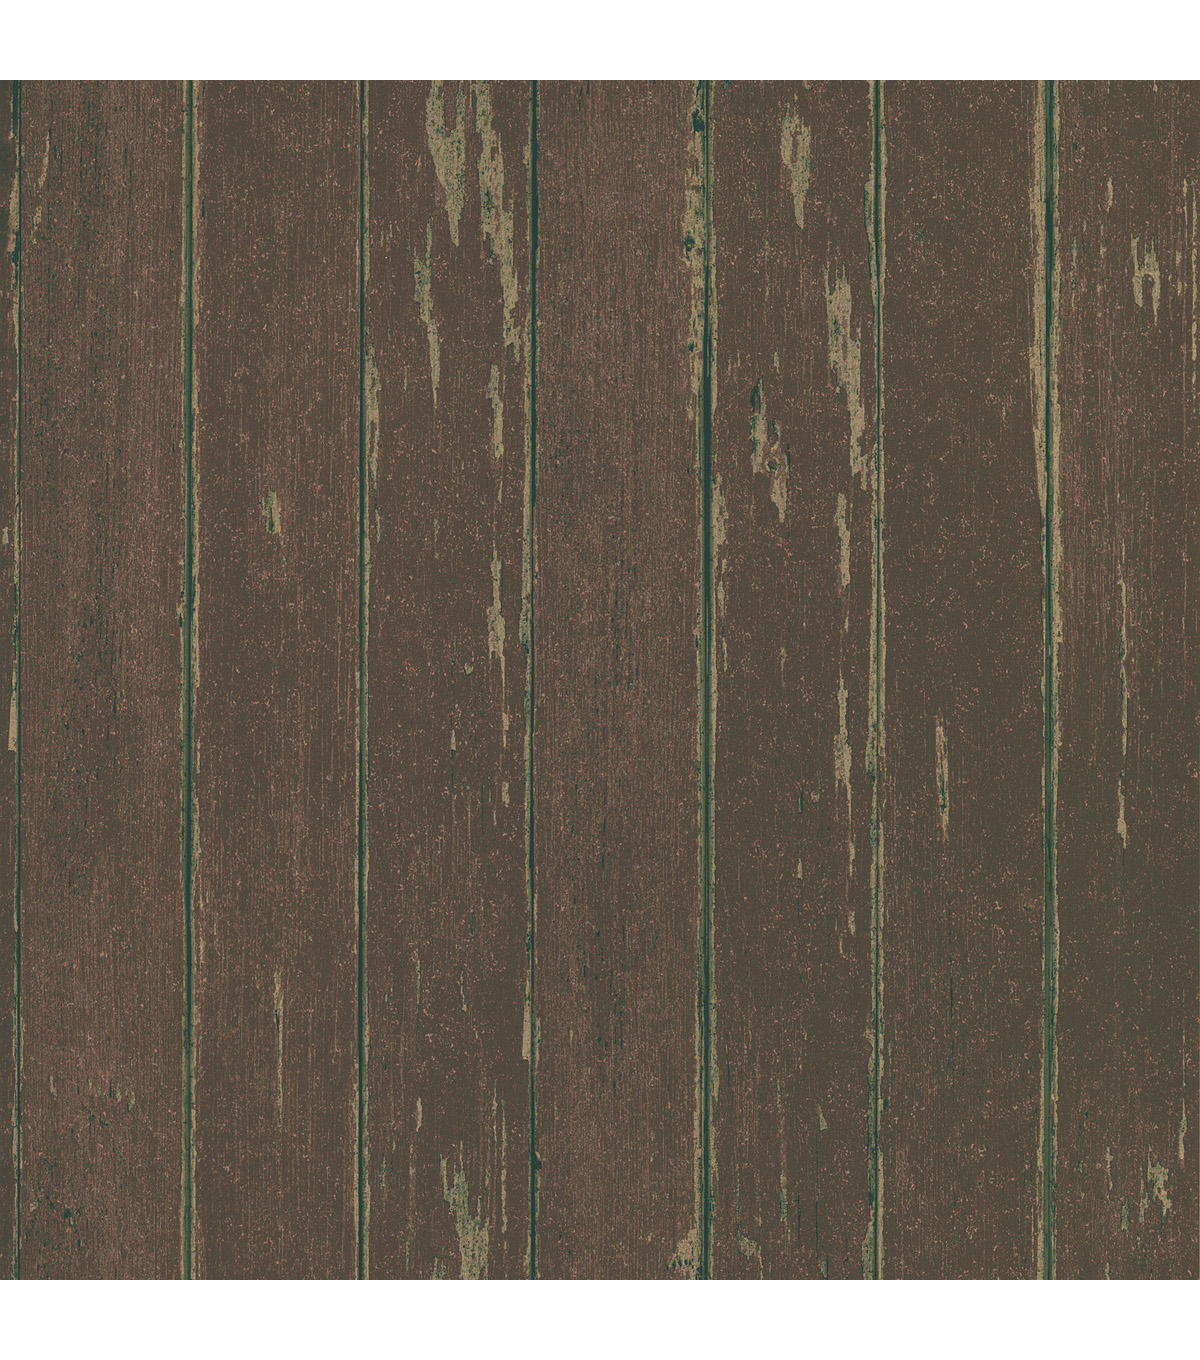 Kentucky Maroon Wood Panel Wallpaper Sample